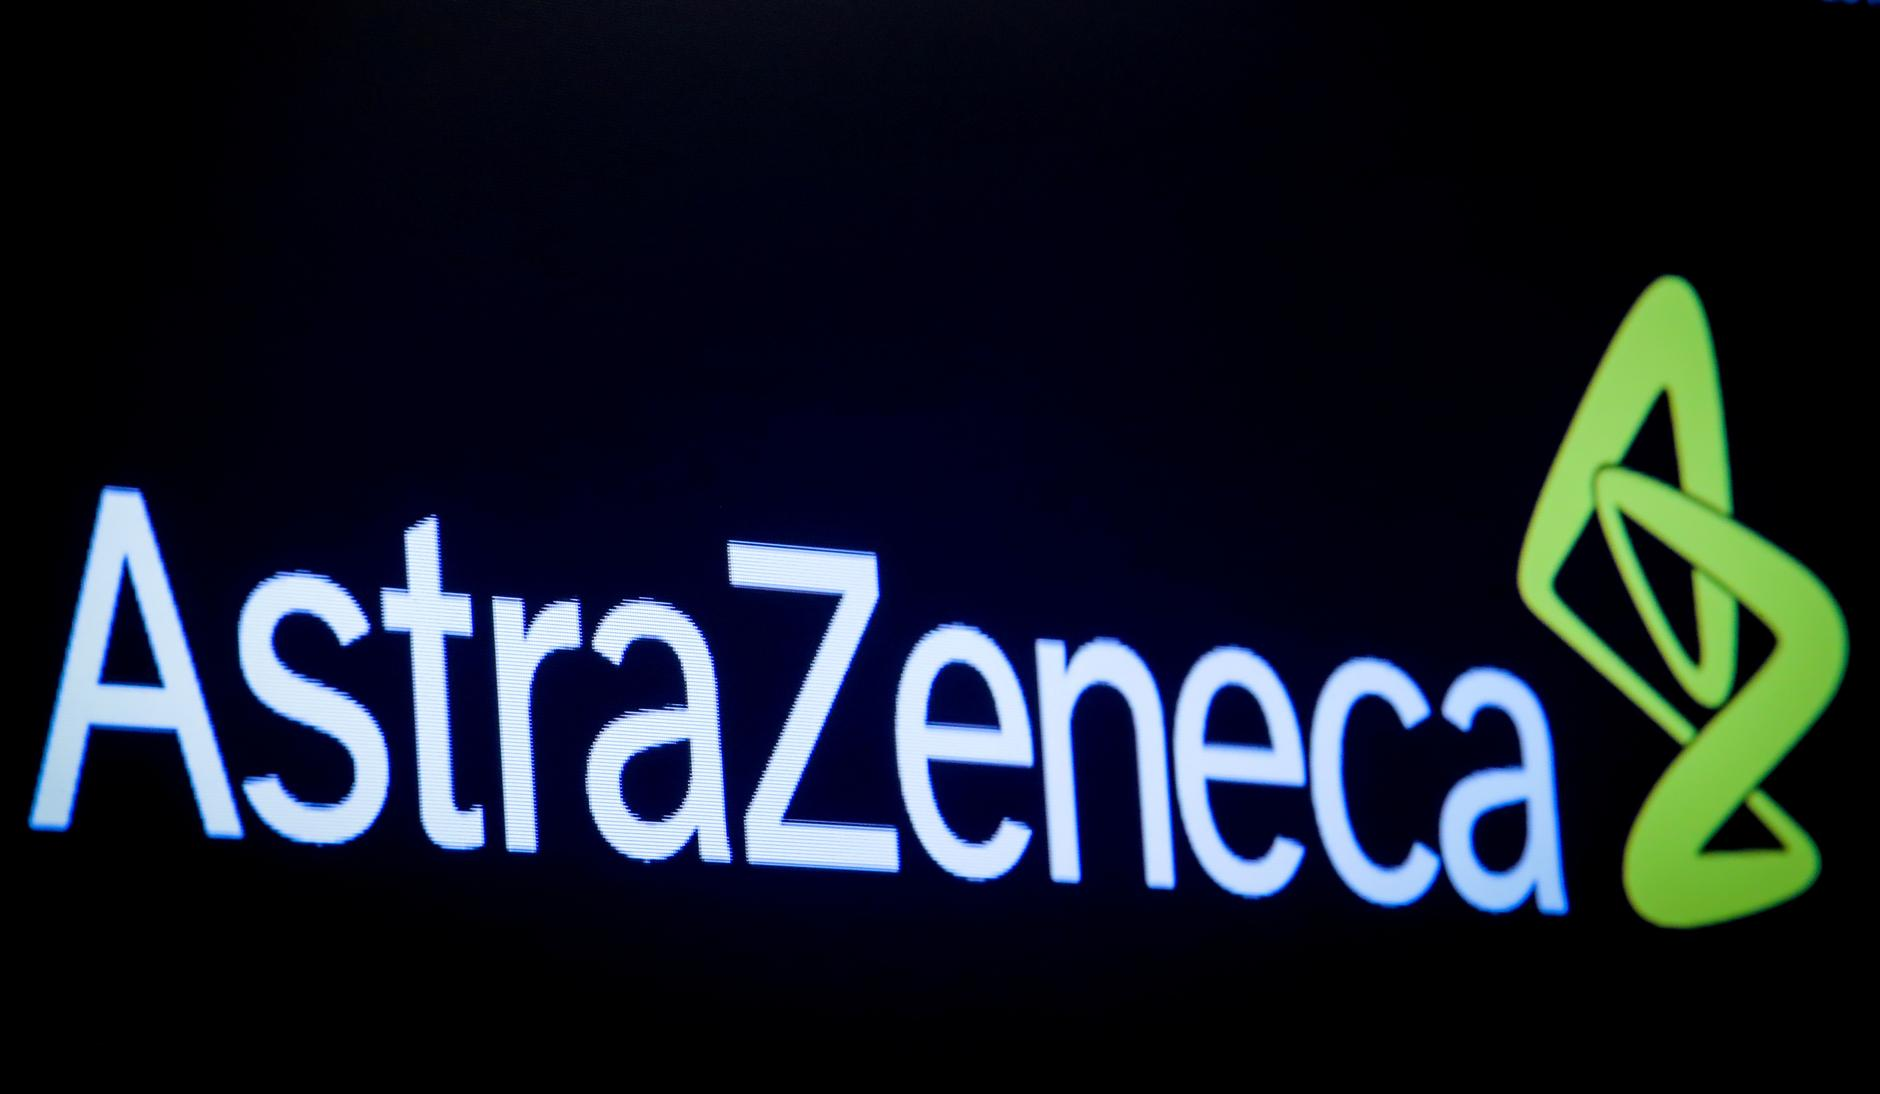 FILE PHOTO: The company logo for pharmaceutical company AstraZeneca is displayed on a screen on the floor at the New York Stock Exchange (NYSE) in New York, U.S., April 8, 2019. REUTERS/Brendan McDermid